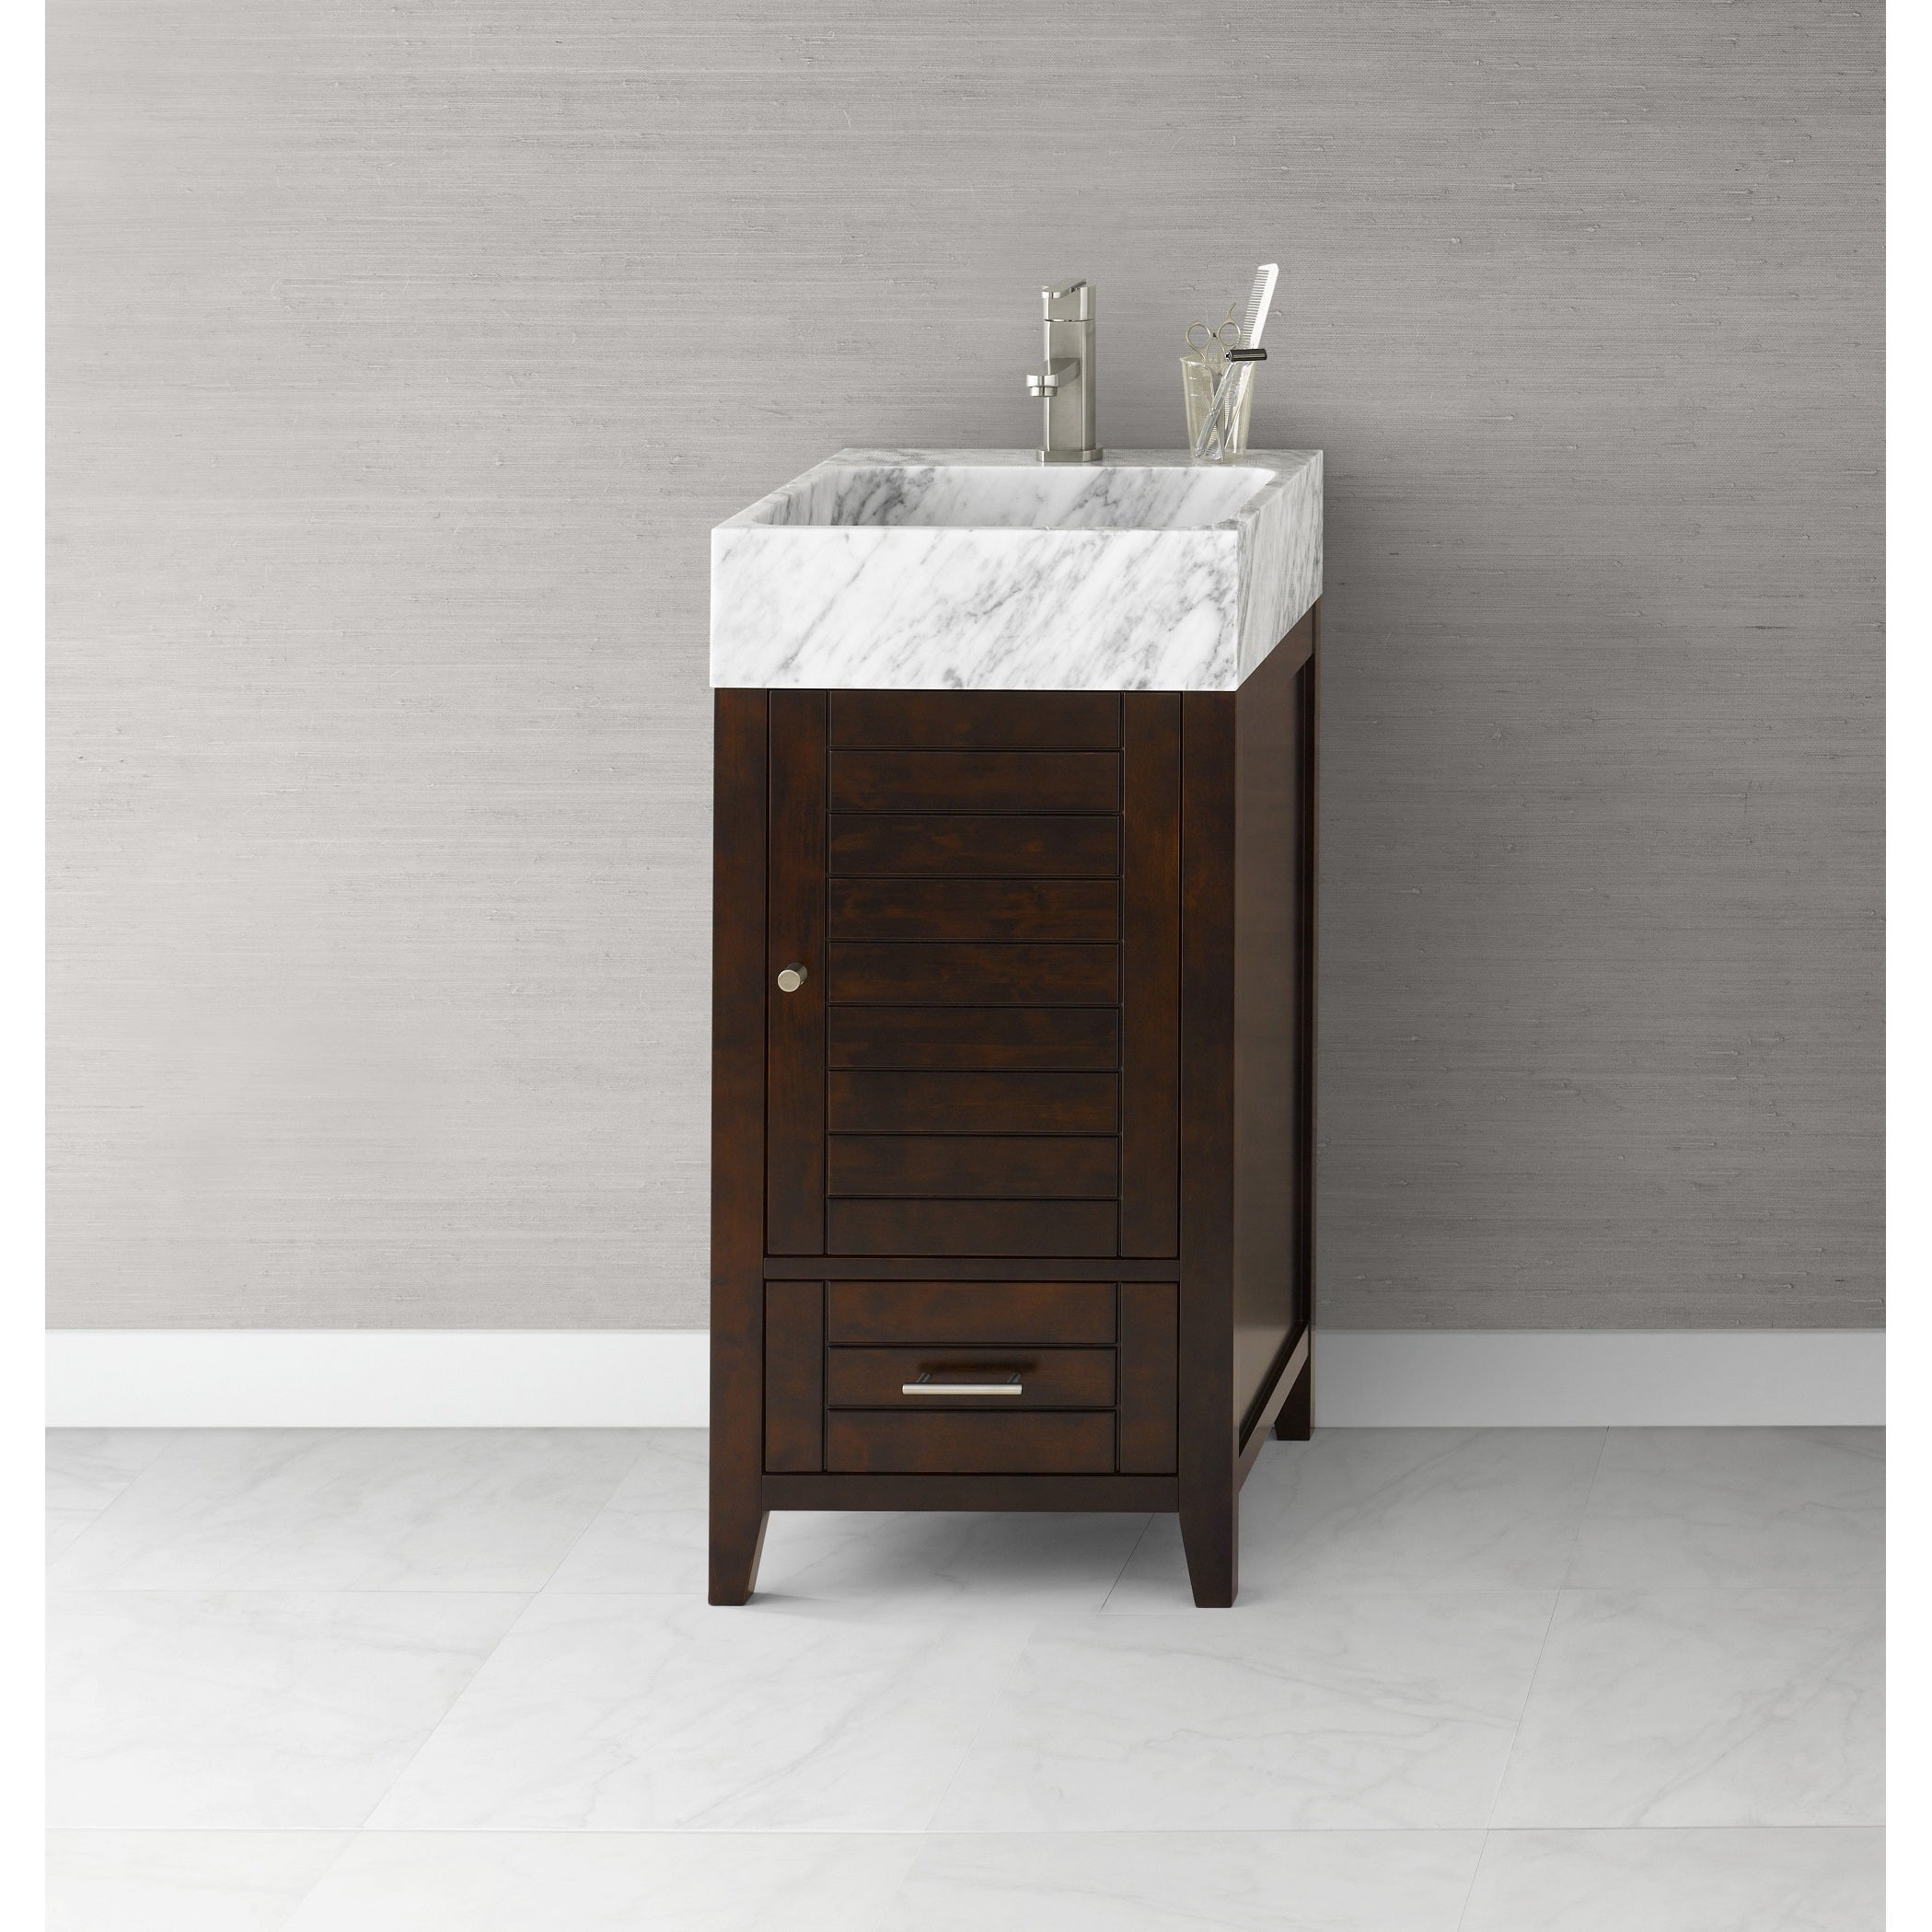 image design ideas bathroom vanity deep set inch home